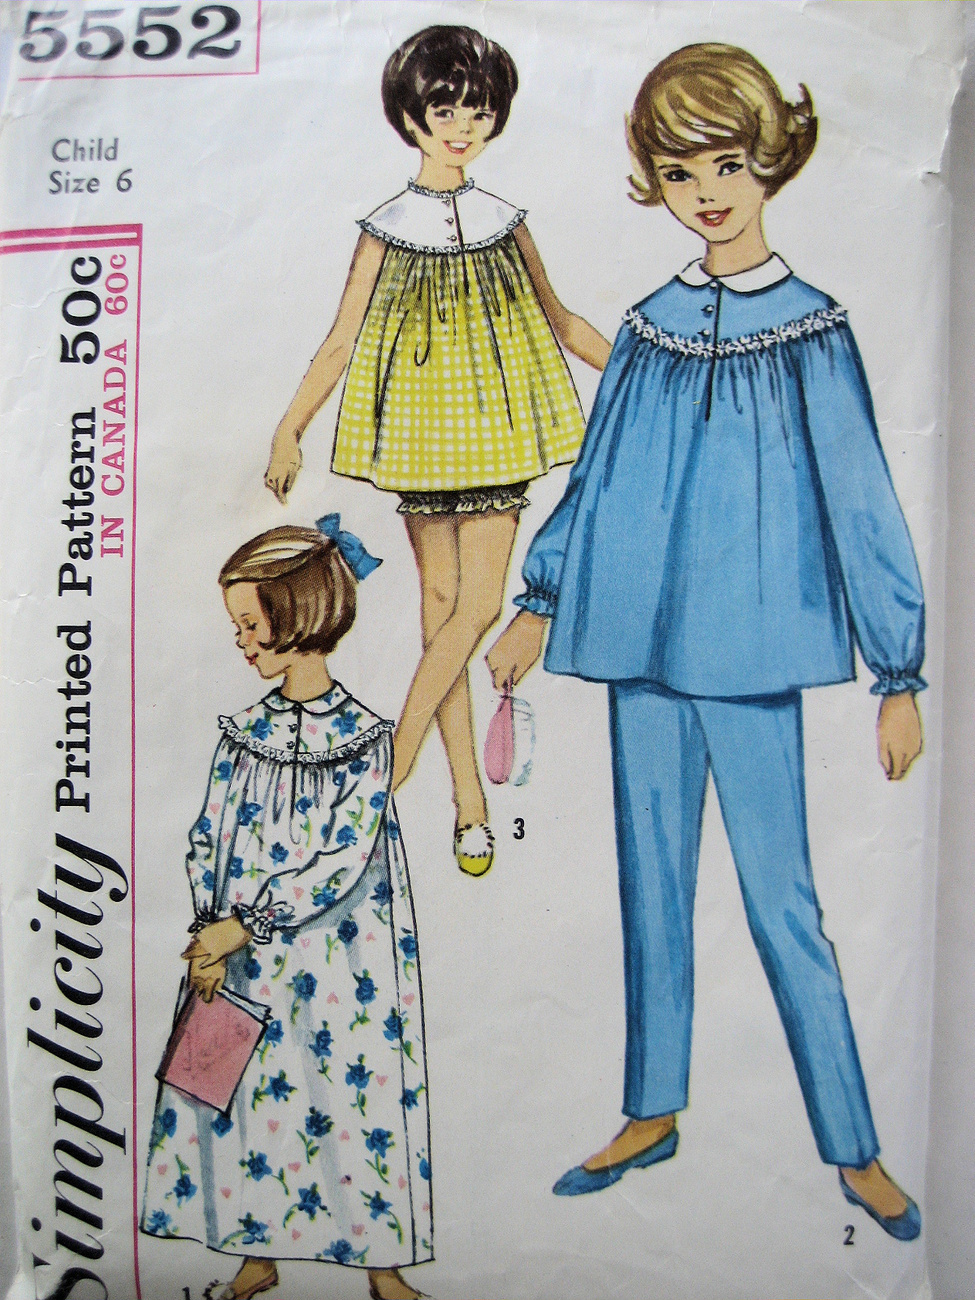 Primary image for Simplicity 5552 Vintage 1960's Pattern Girls Size 4 Nightgown  Baby Doll PJs